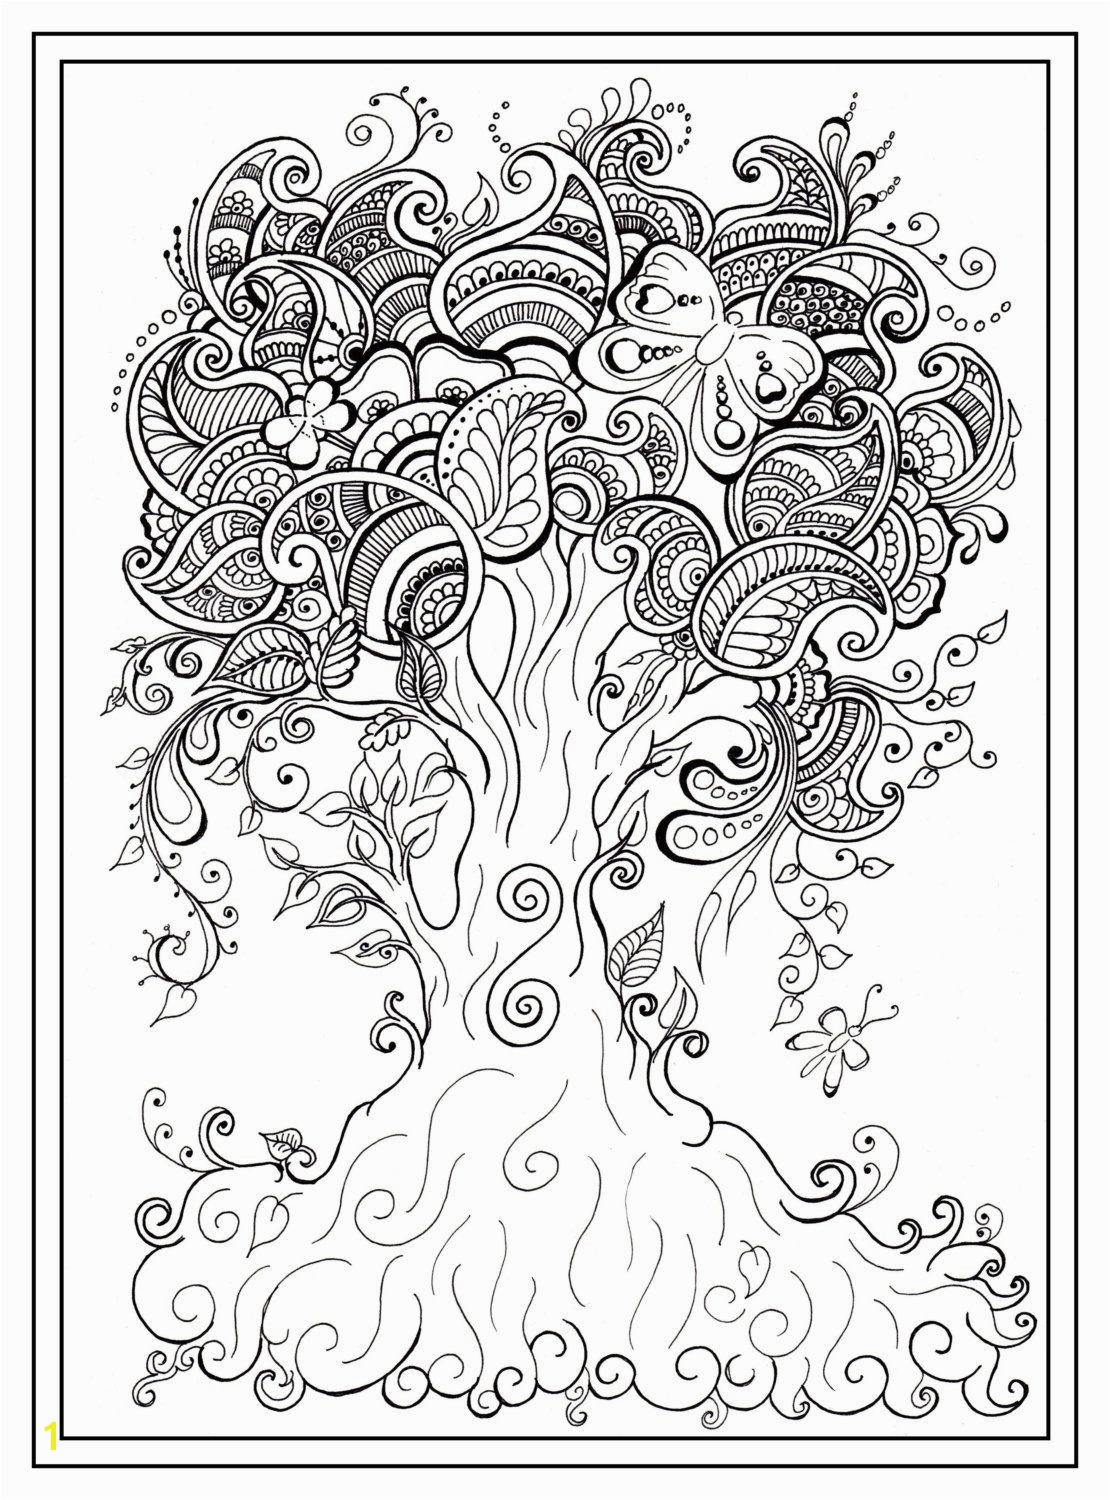 Enchanted forest Coloring Pages Pdf Luxury Adult Colouring In Pdf Download Tree Dragonfly Henna Zen Mandalas